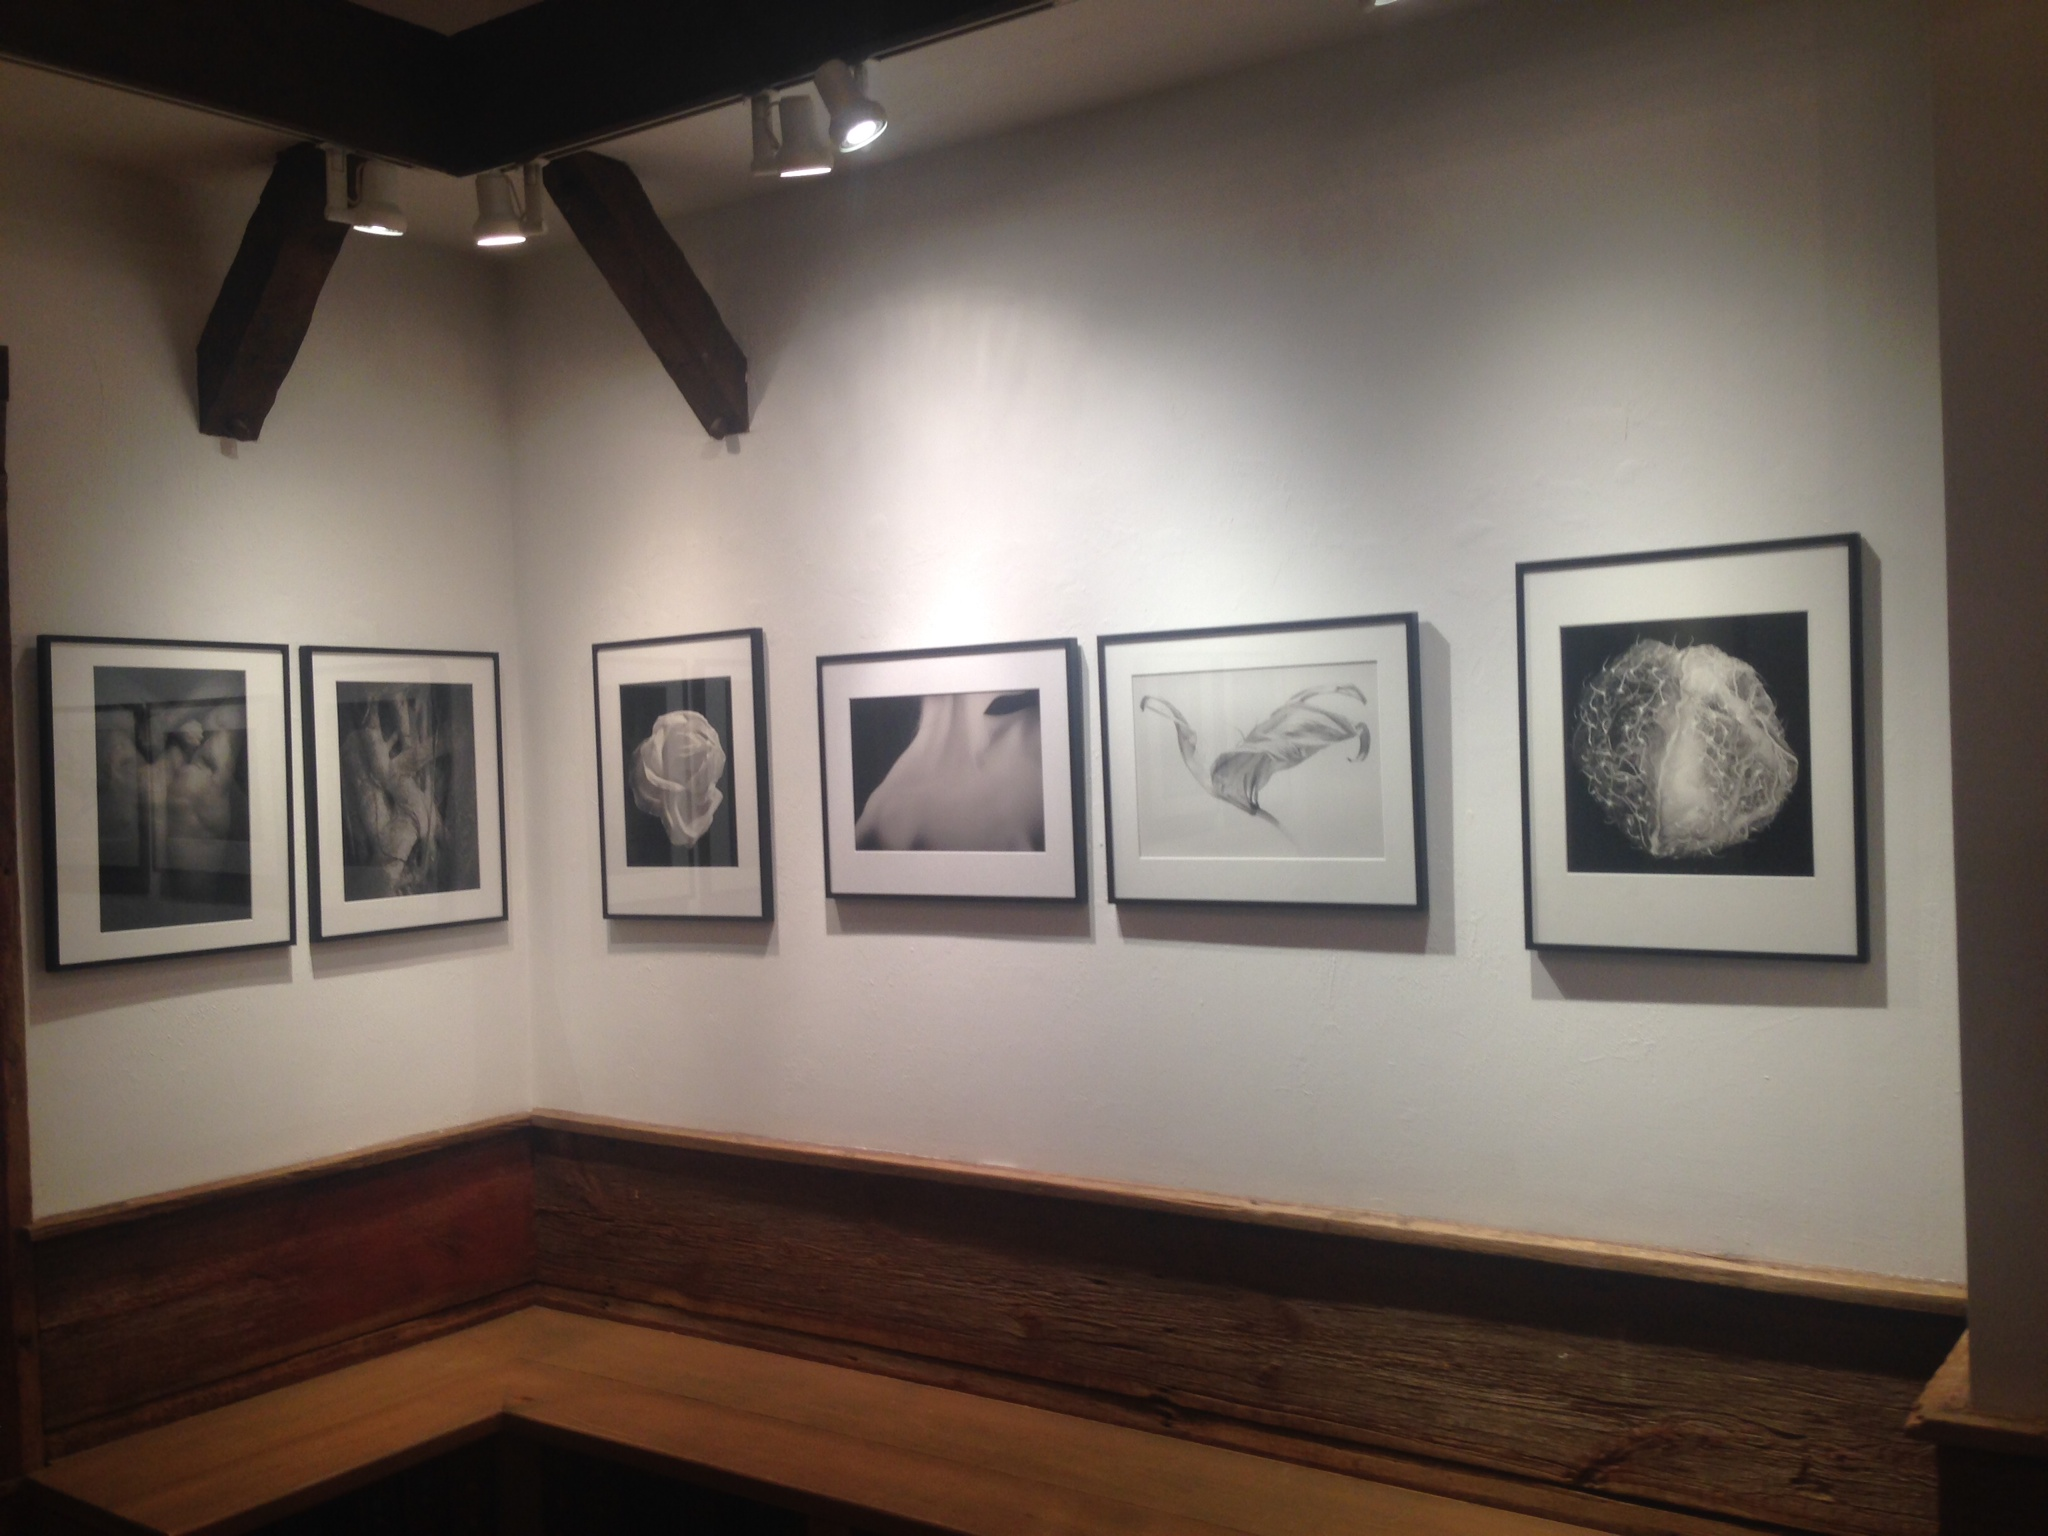 Griffin Museum of Photography 4.10.14